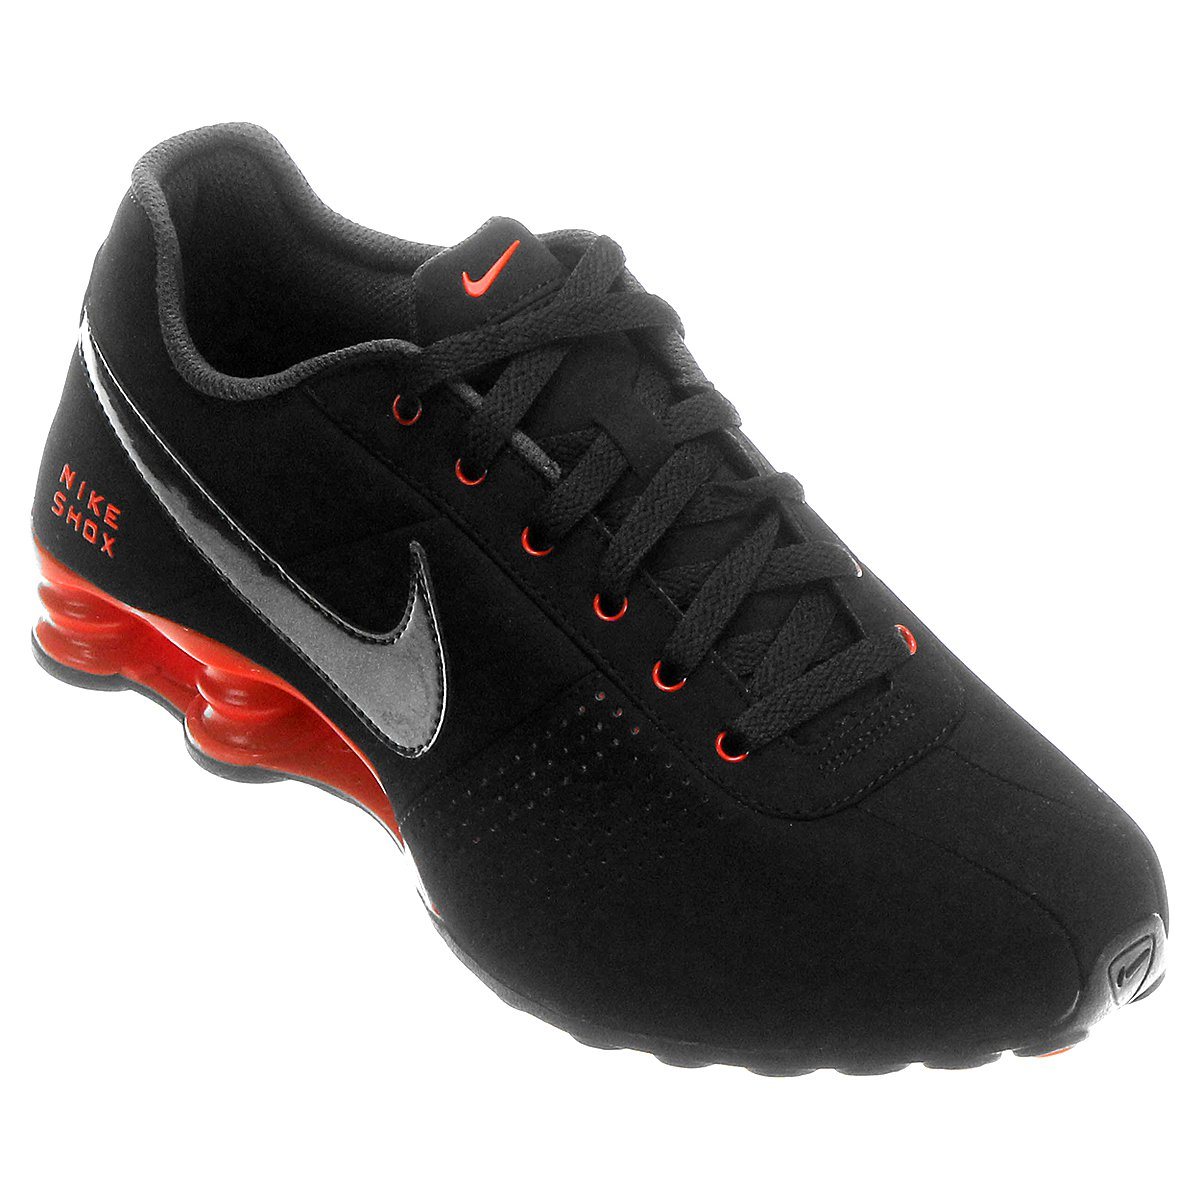 purchase cheap 2b06c a4d52 Tênis Nike Shox Deliver - Preto+Laranja Escuro ...